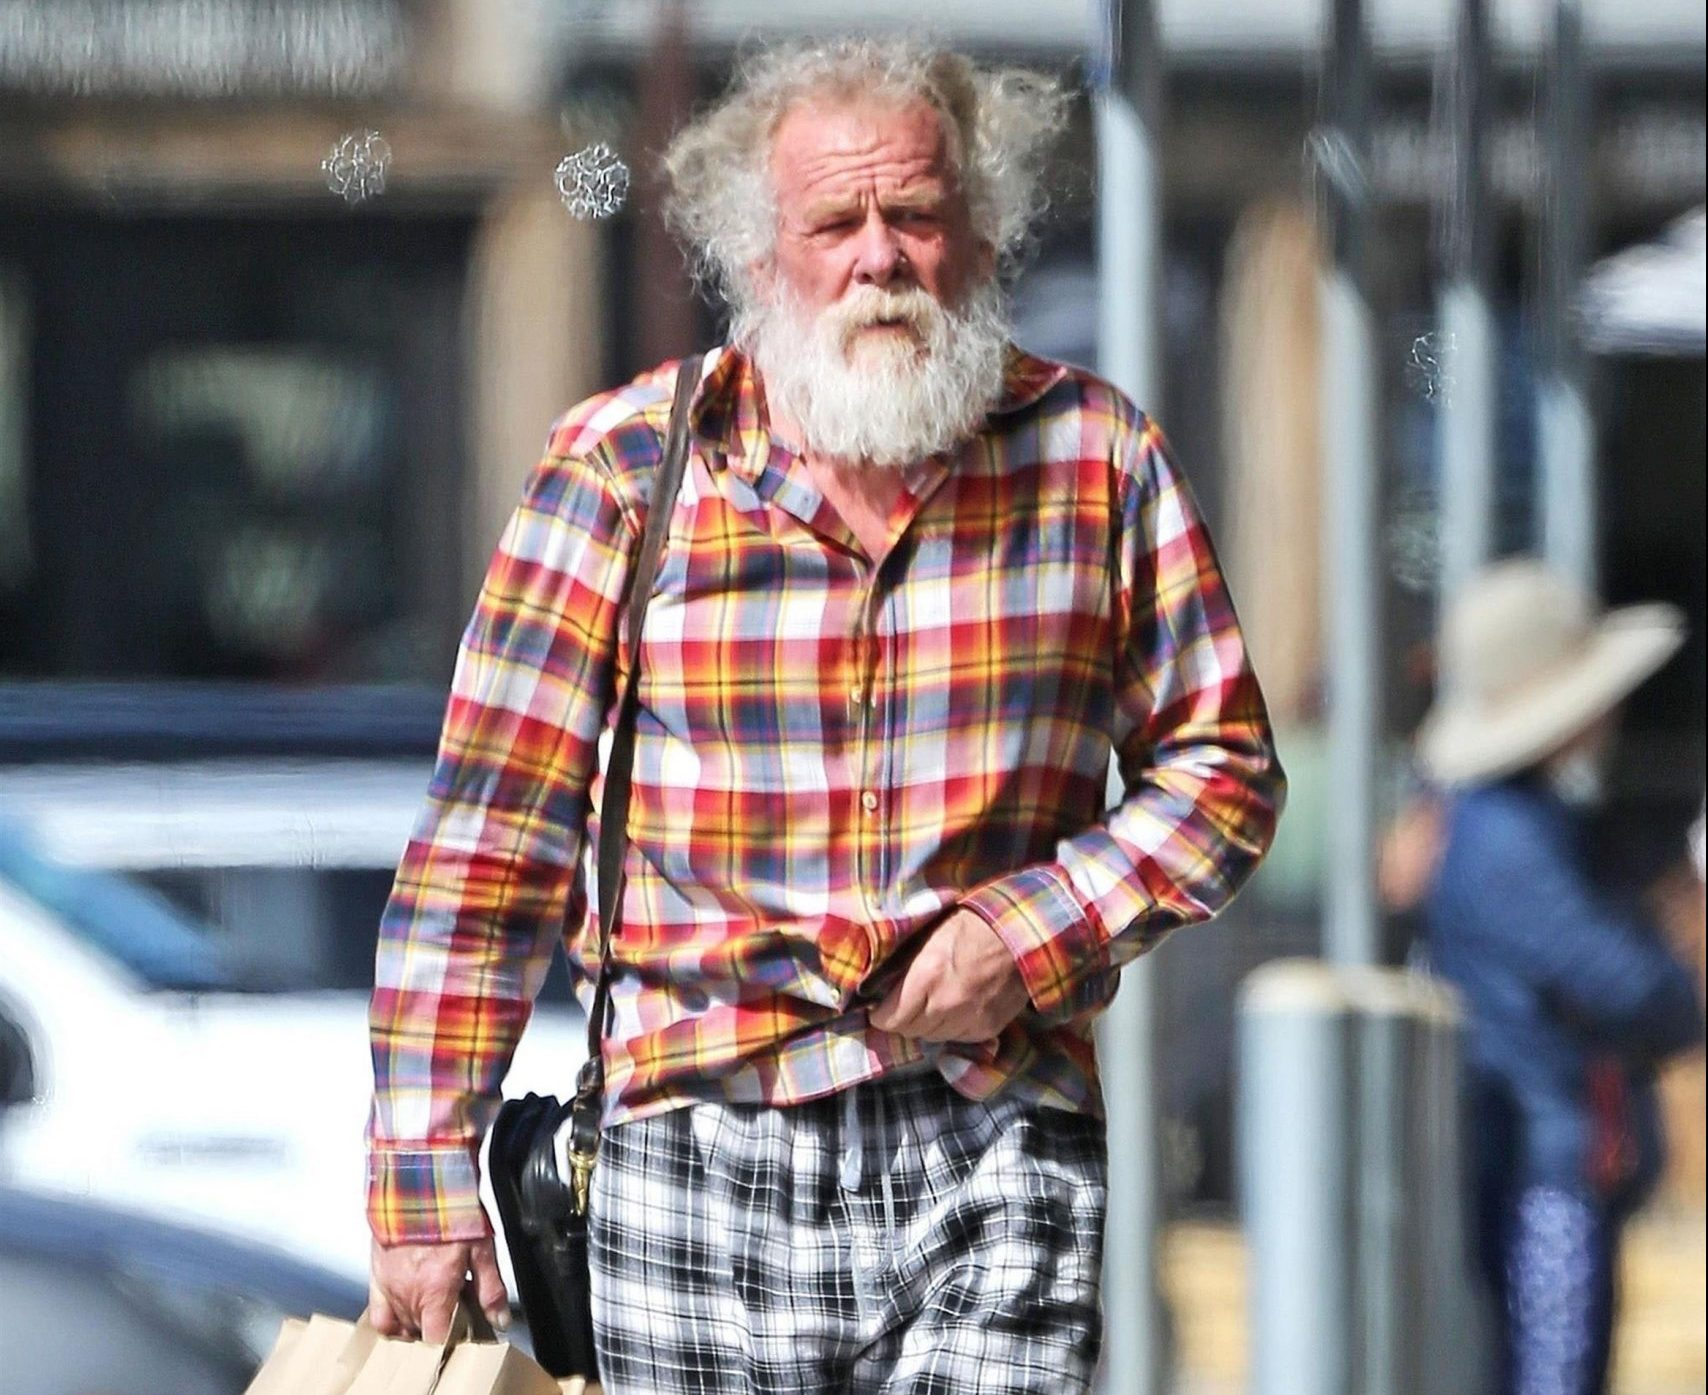 20 Fun Facts About Nick Nolte